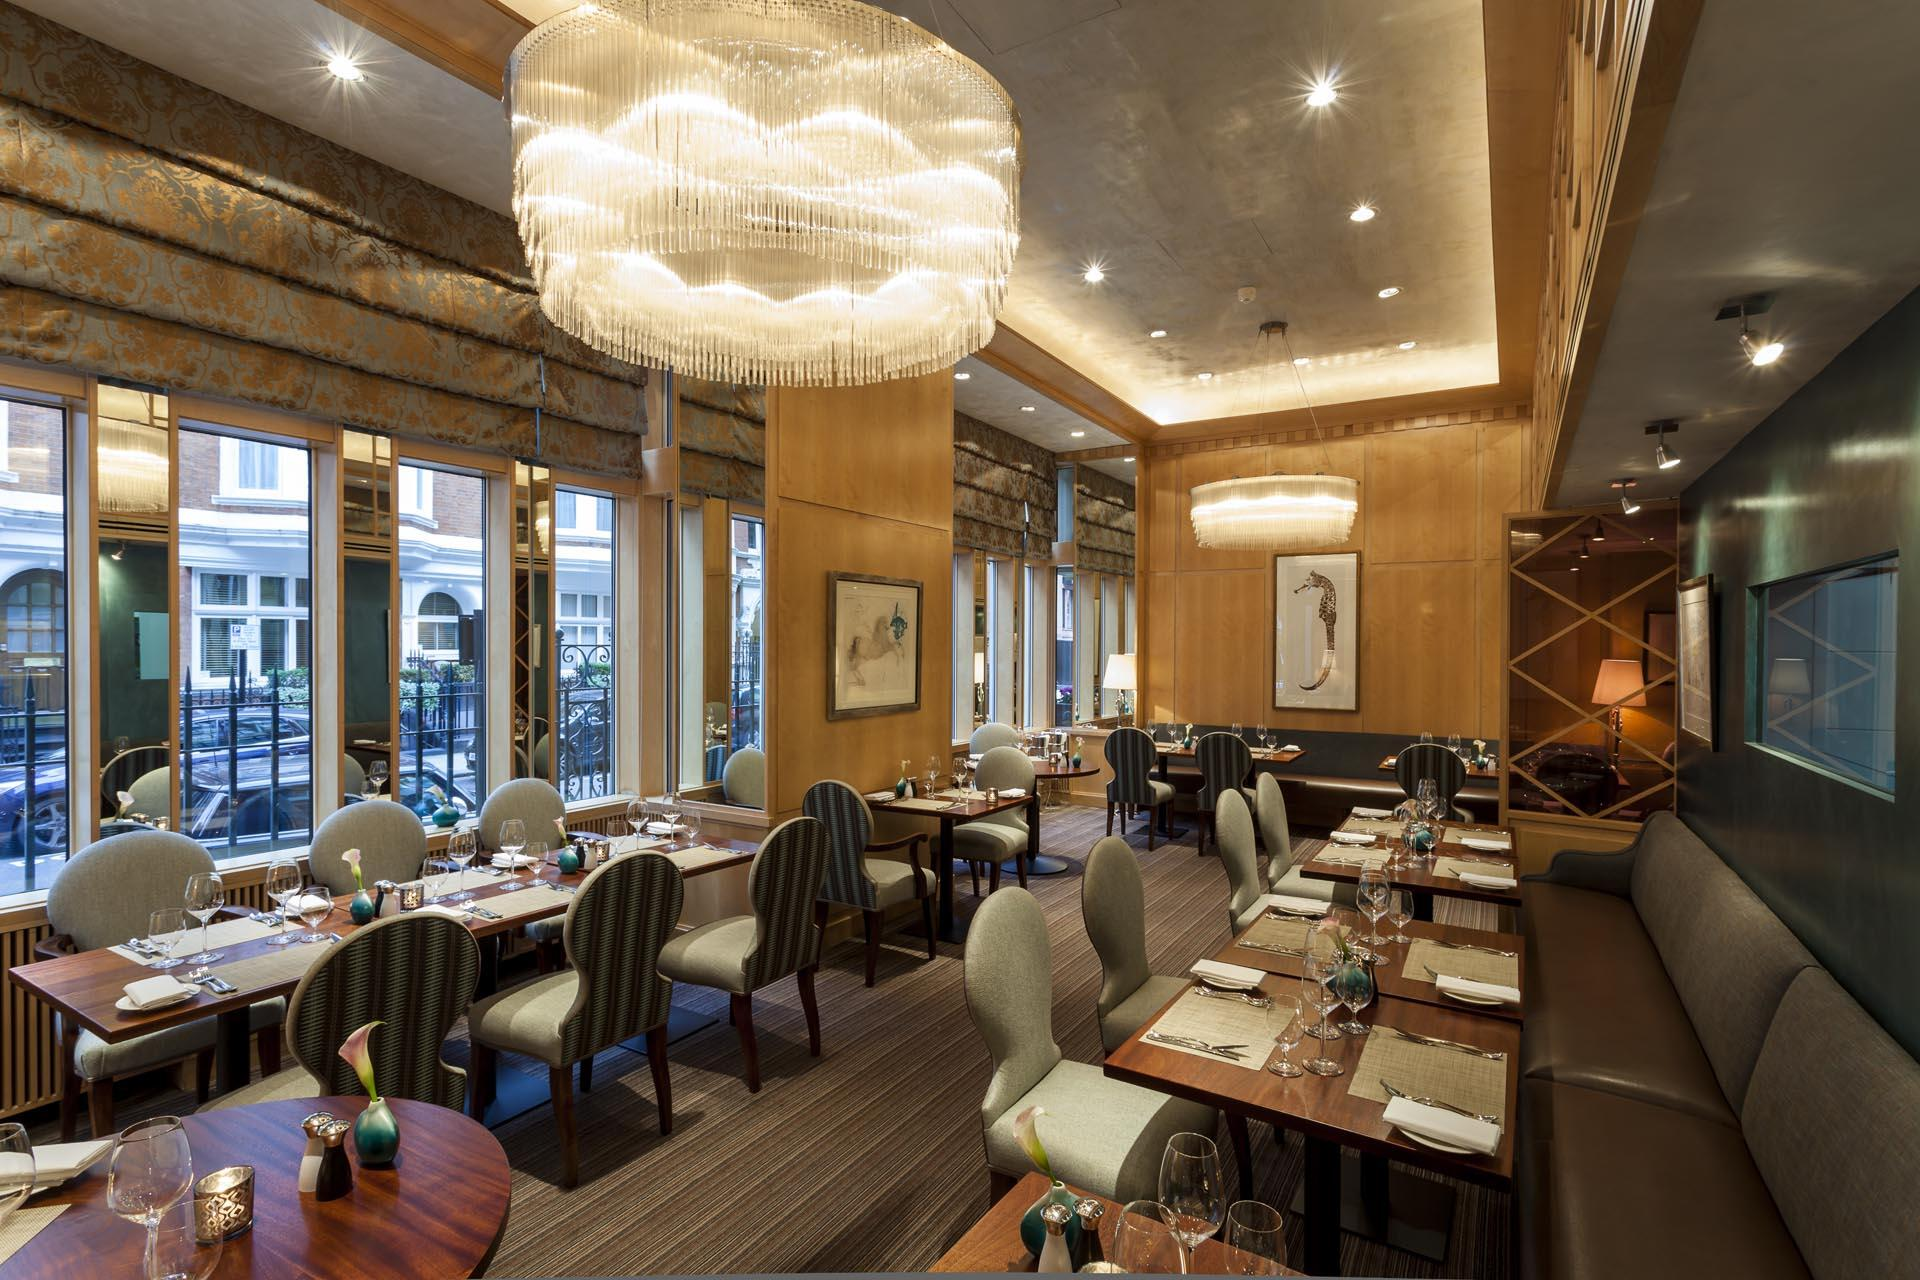 Dining area with exterior views at The Restaurant at the Capital